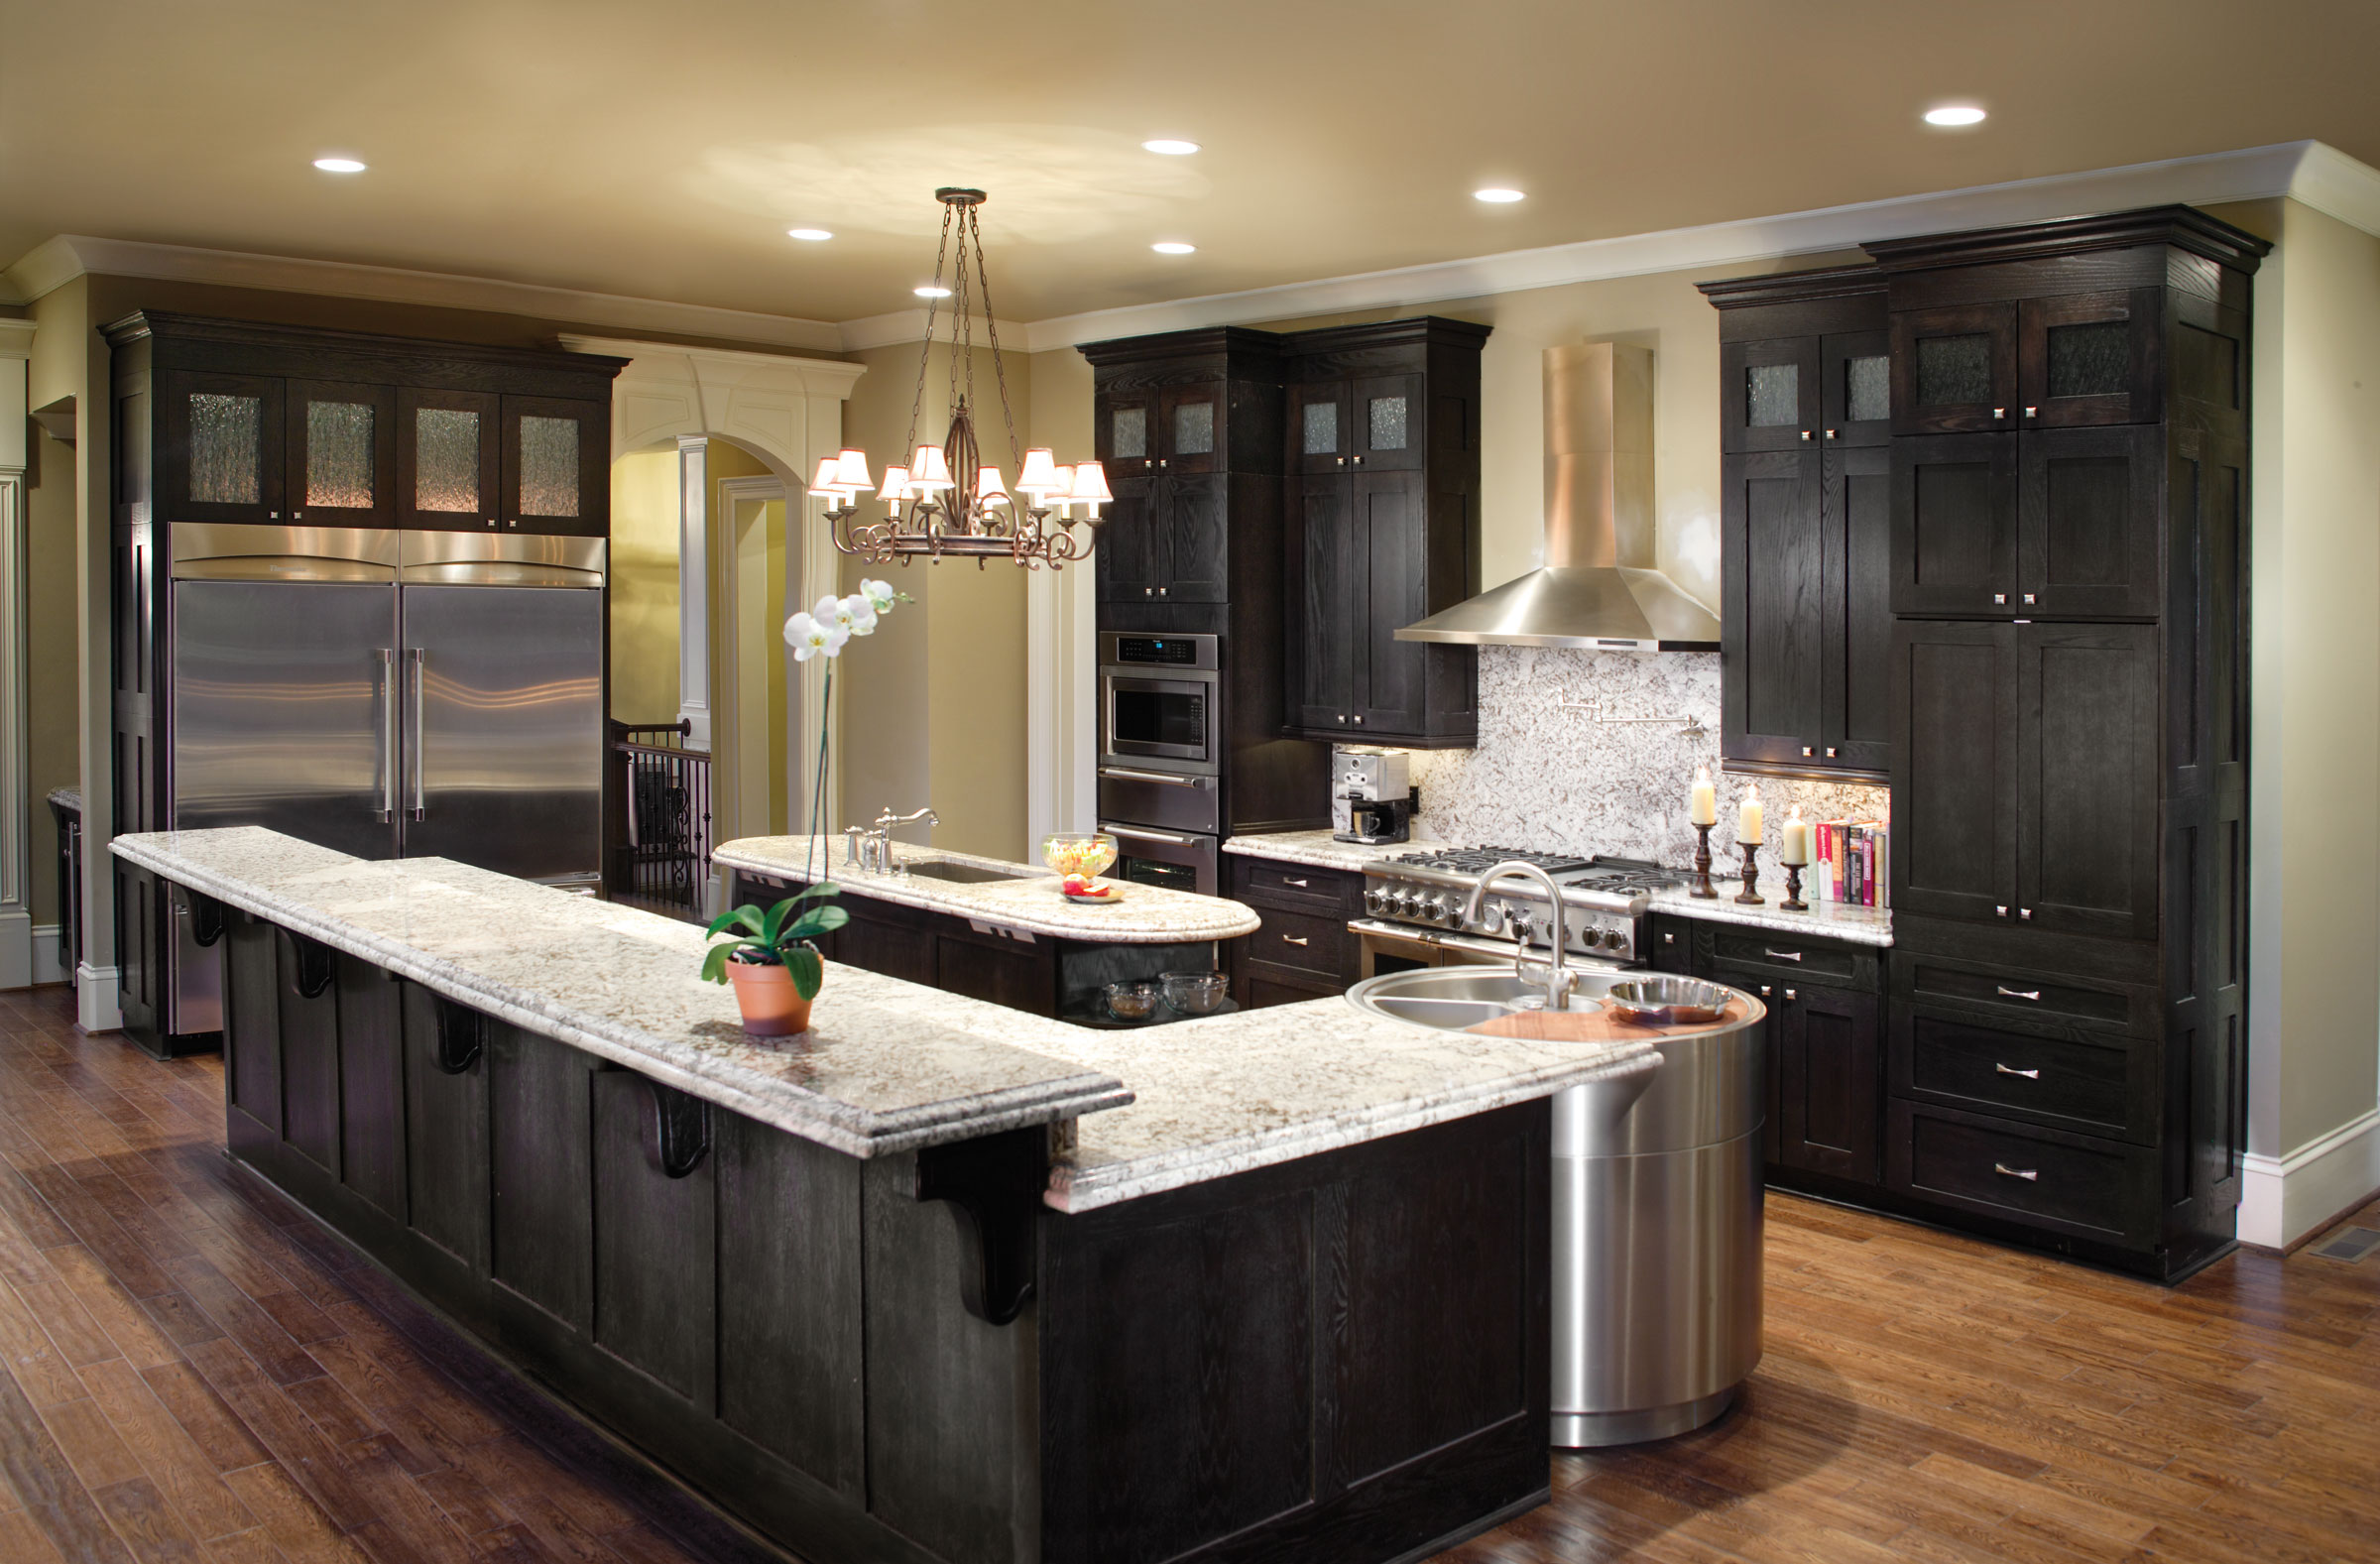 Custom Kitchen Cabinets Custom Kitchen & Bathroom Cabinets Company In Phoenix Az